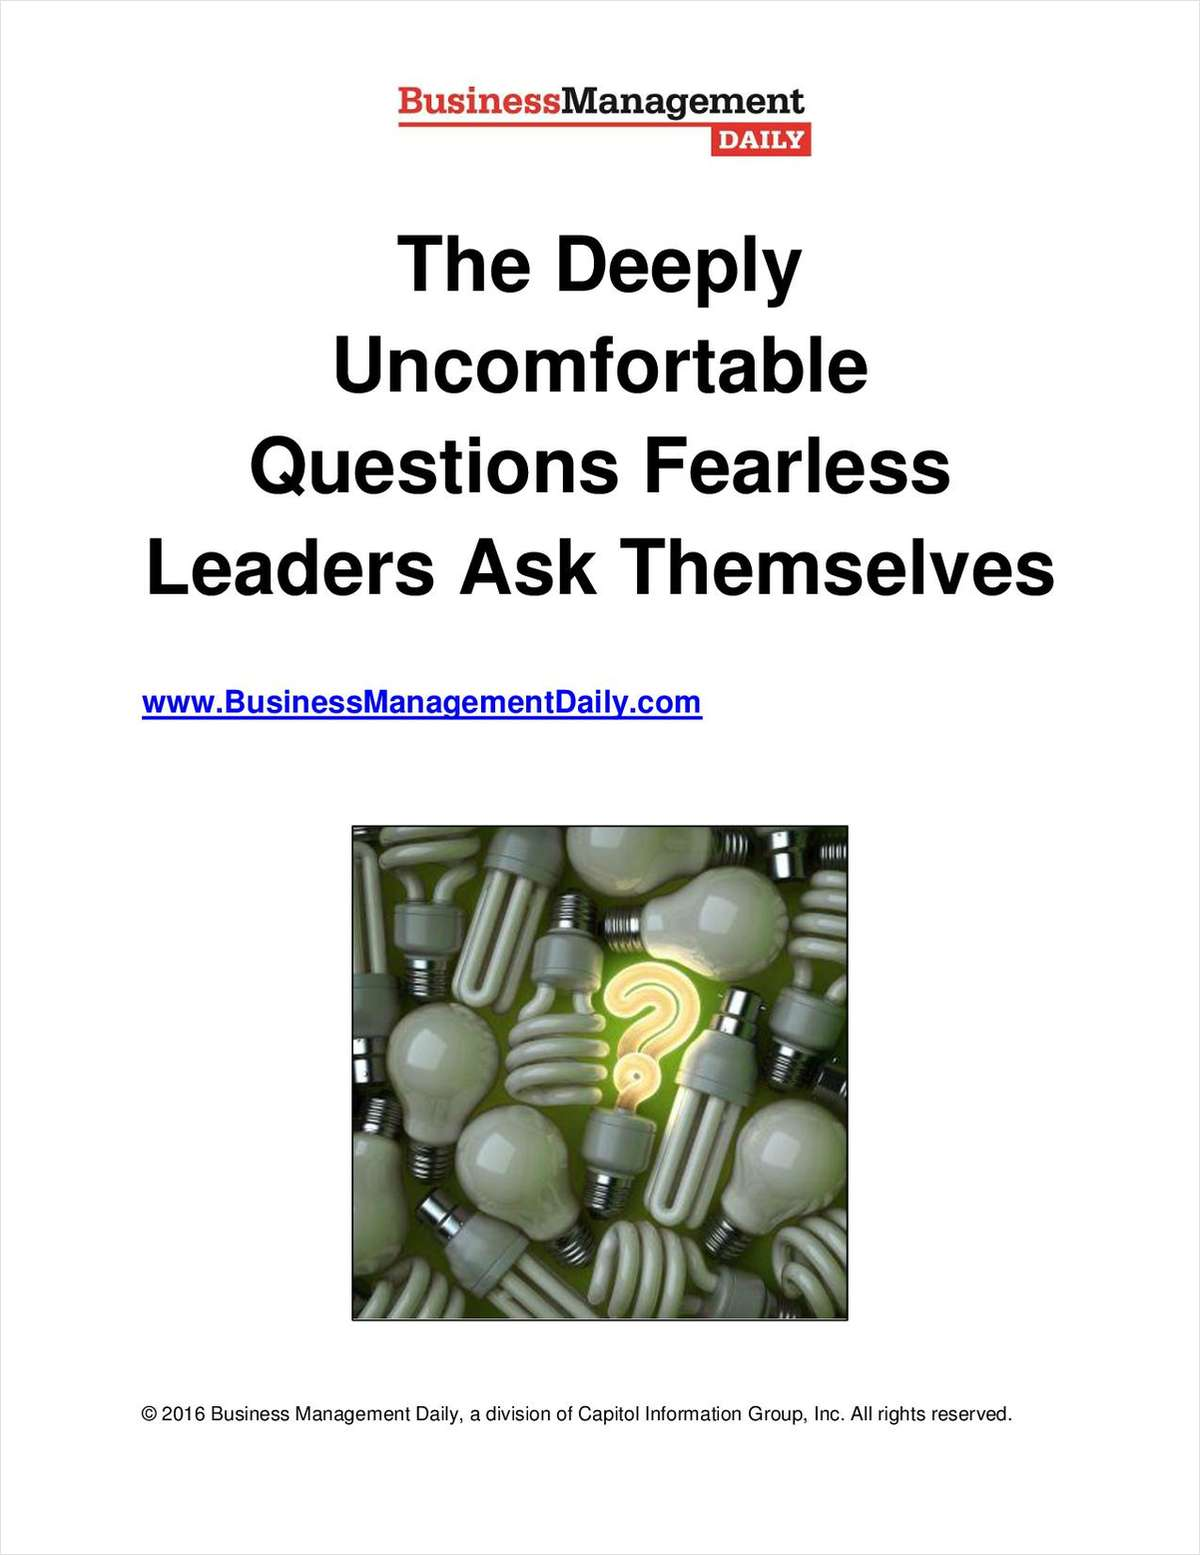 The Deeply Uncomfortable Questions Fearless Leaders Ask Themselves